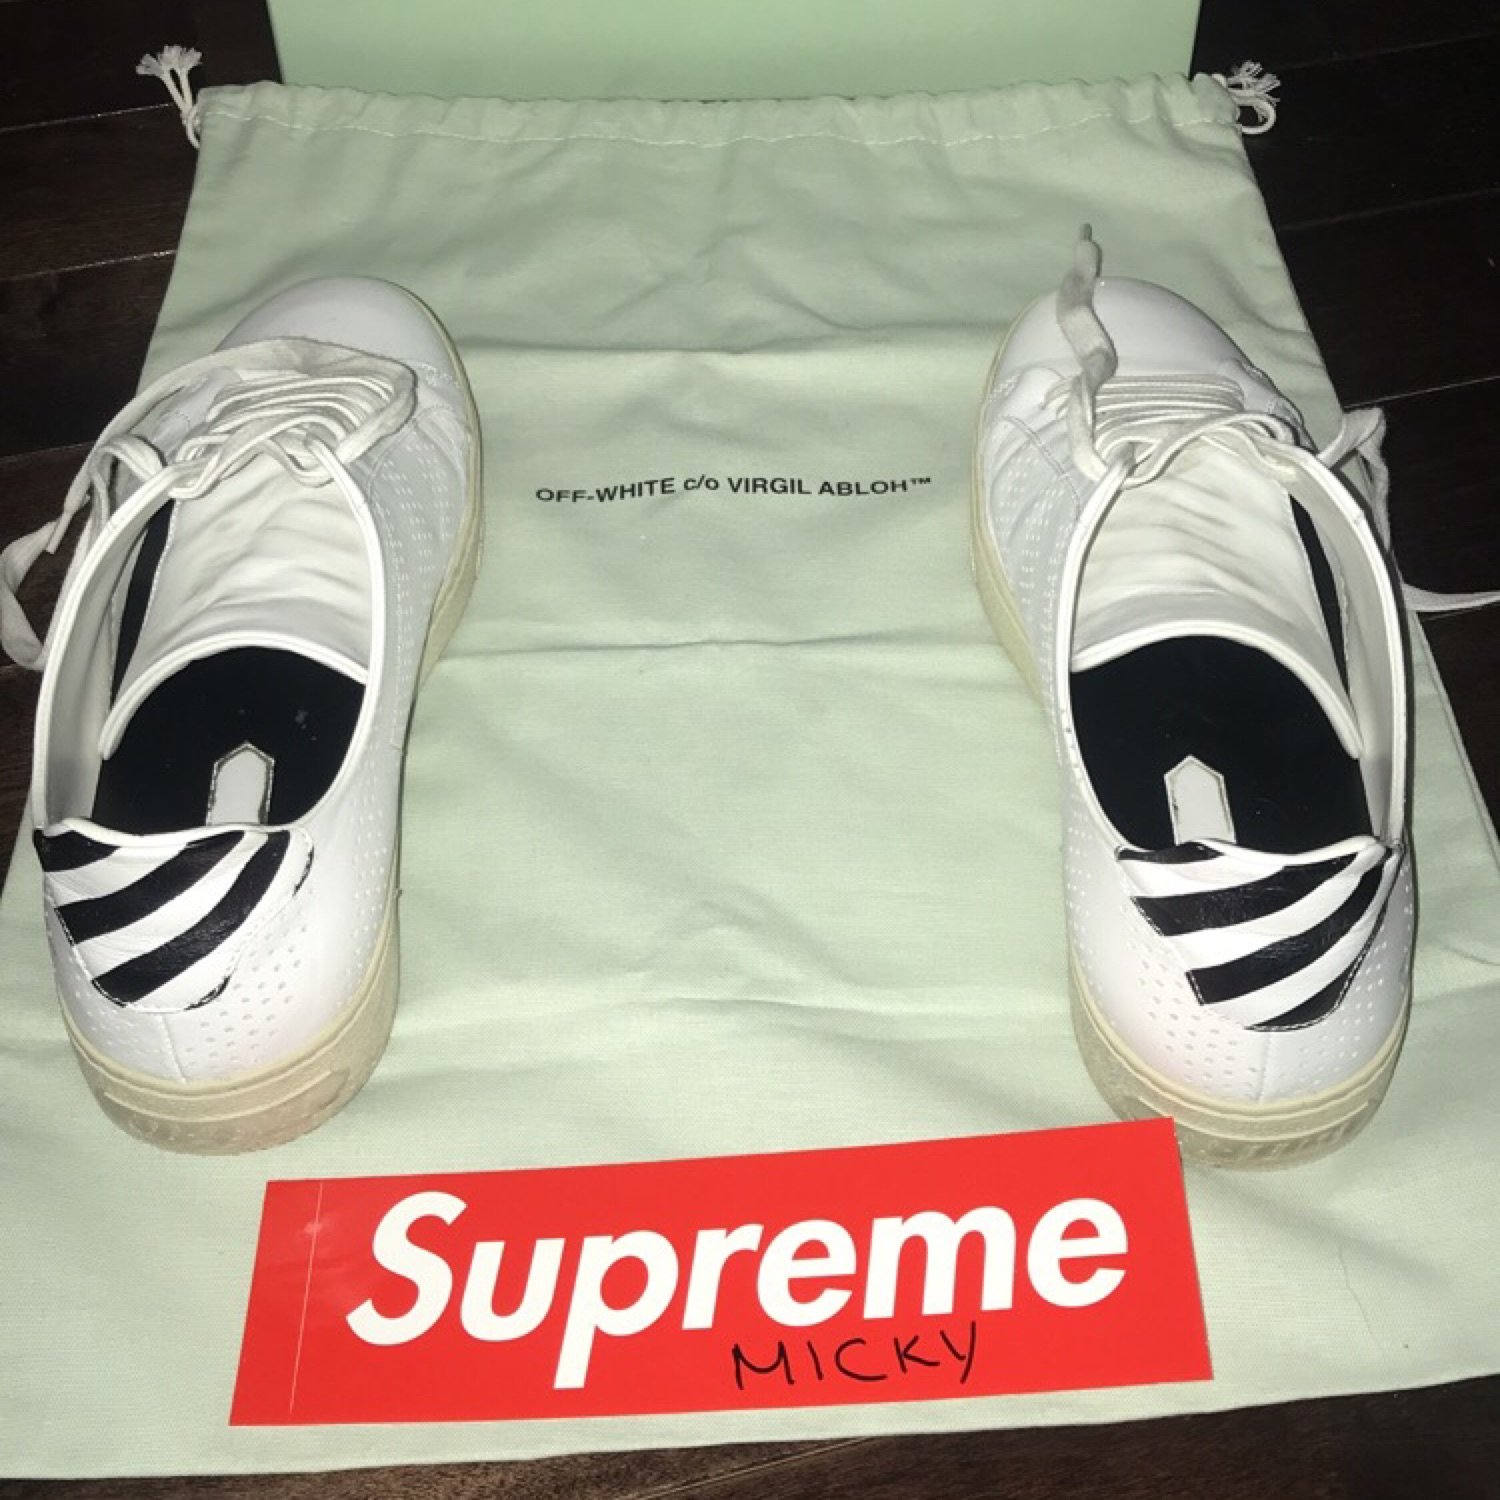 Off-White Shoes (Blue Collar)